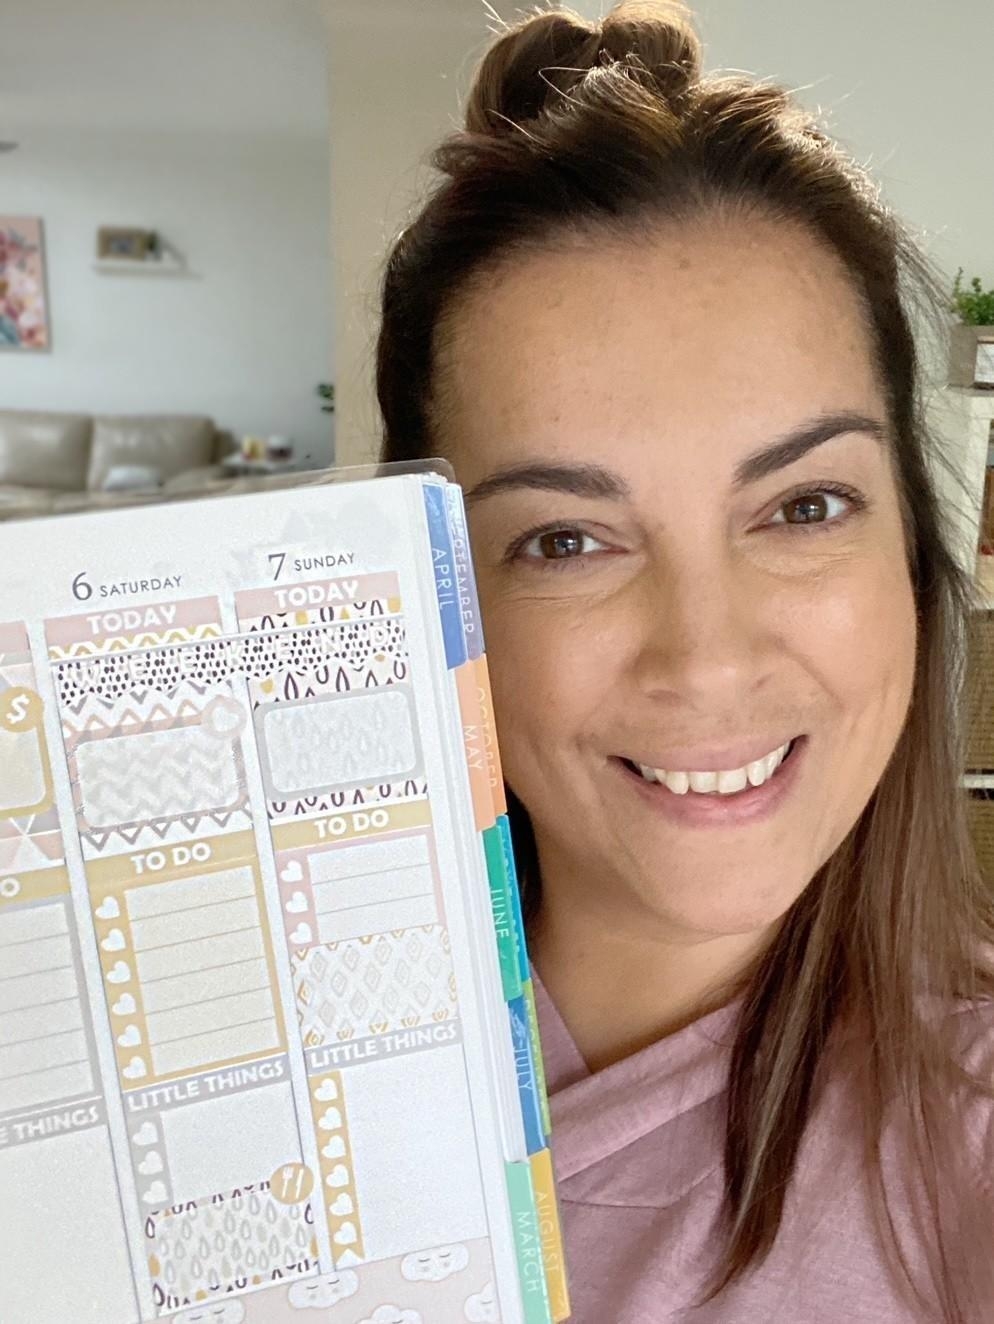 Woman holding planner